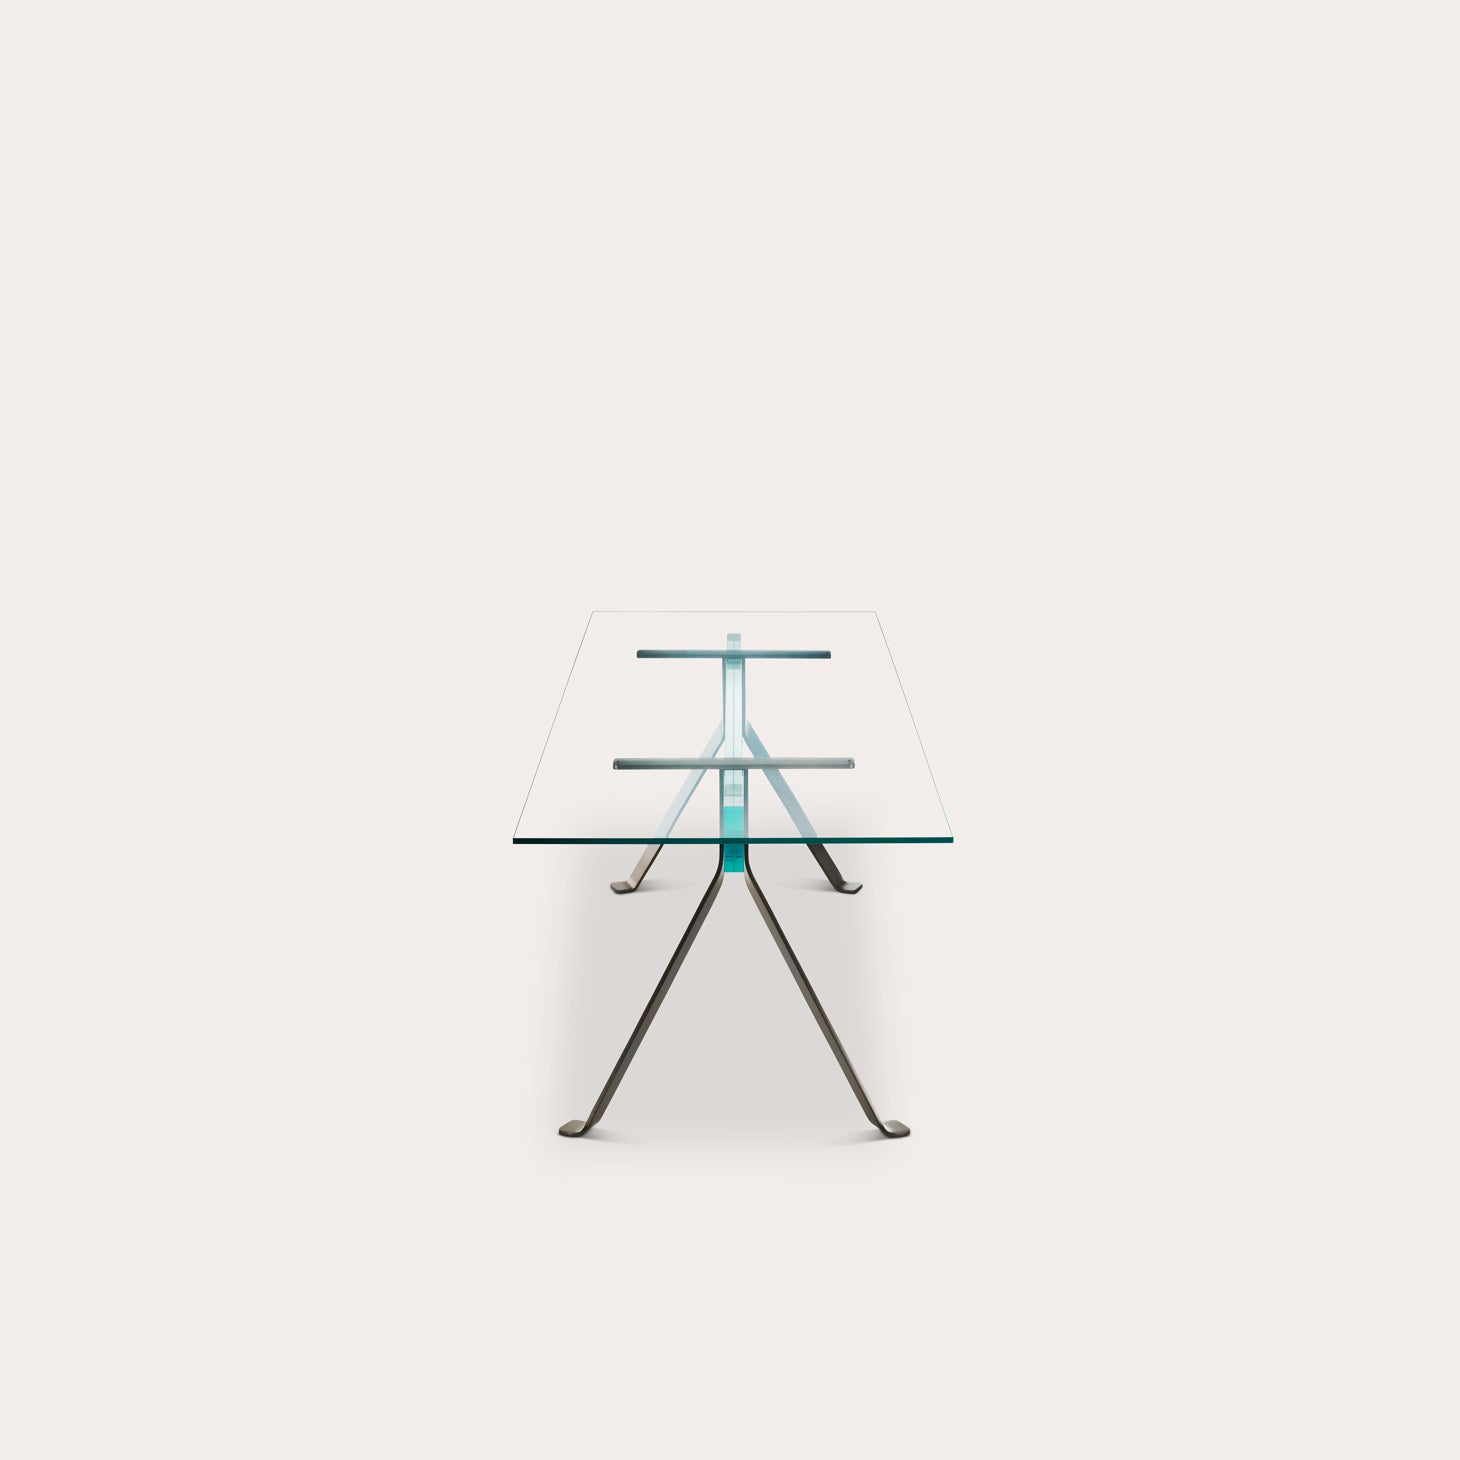 Mari Crystal Dining Table Tables Philippe Starck Designer Furniture Sku: 288-230-10249